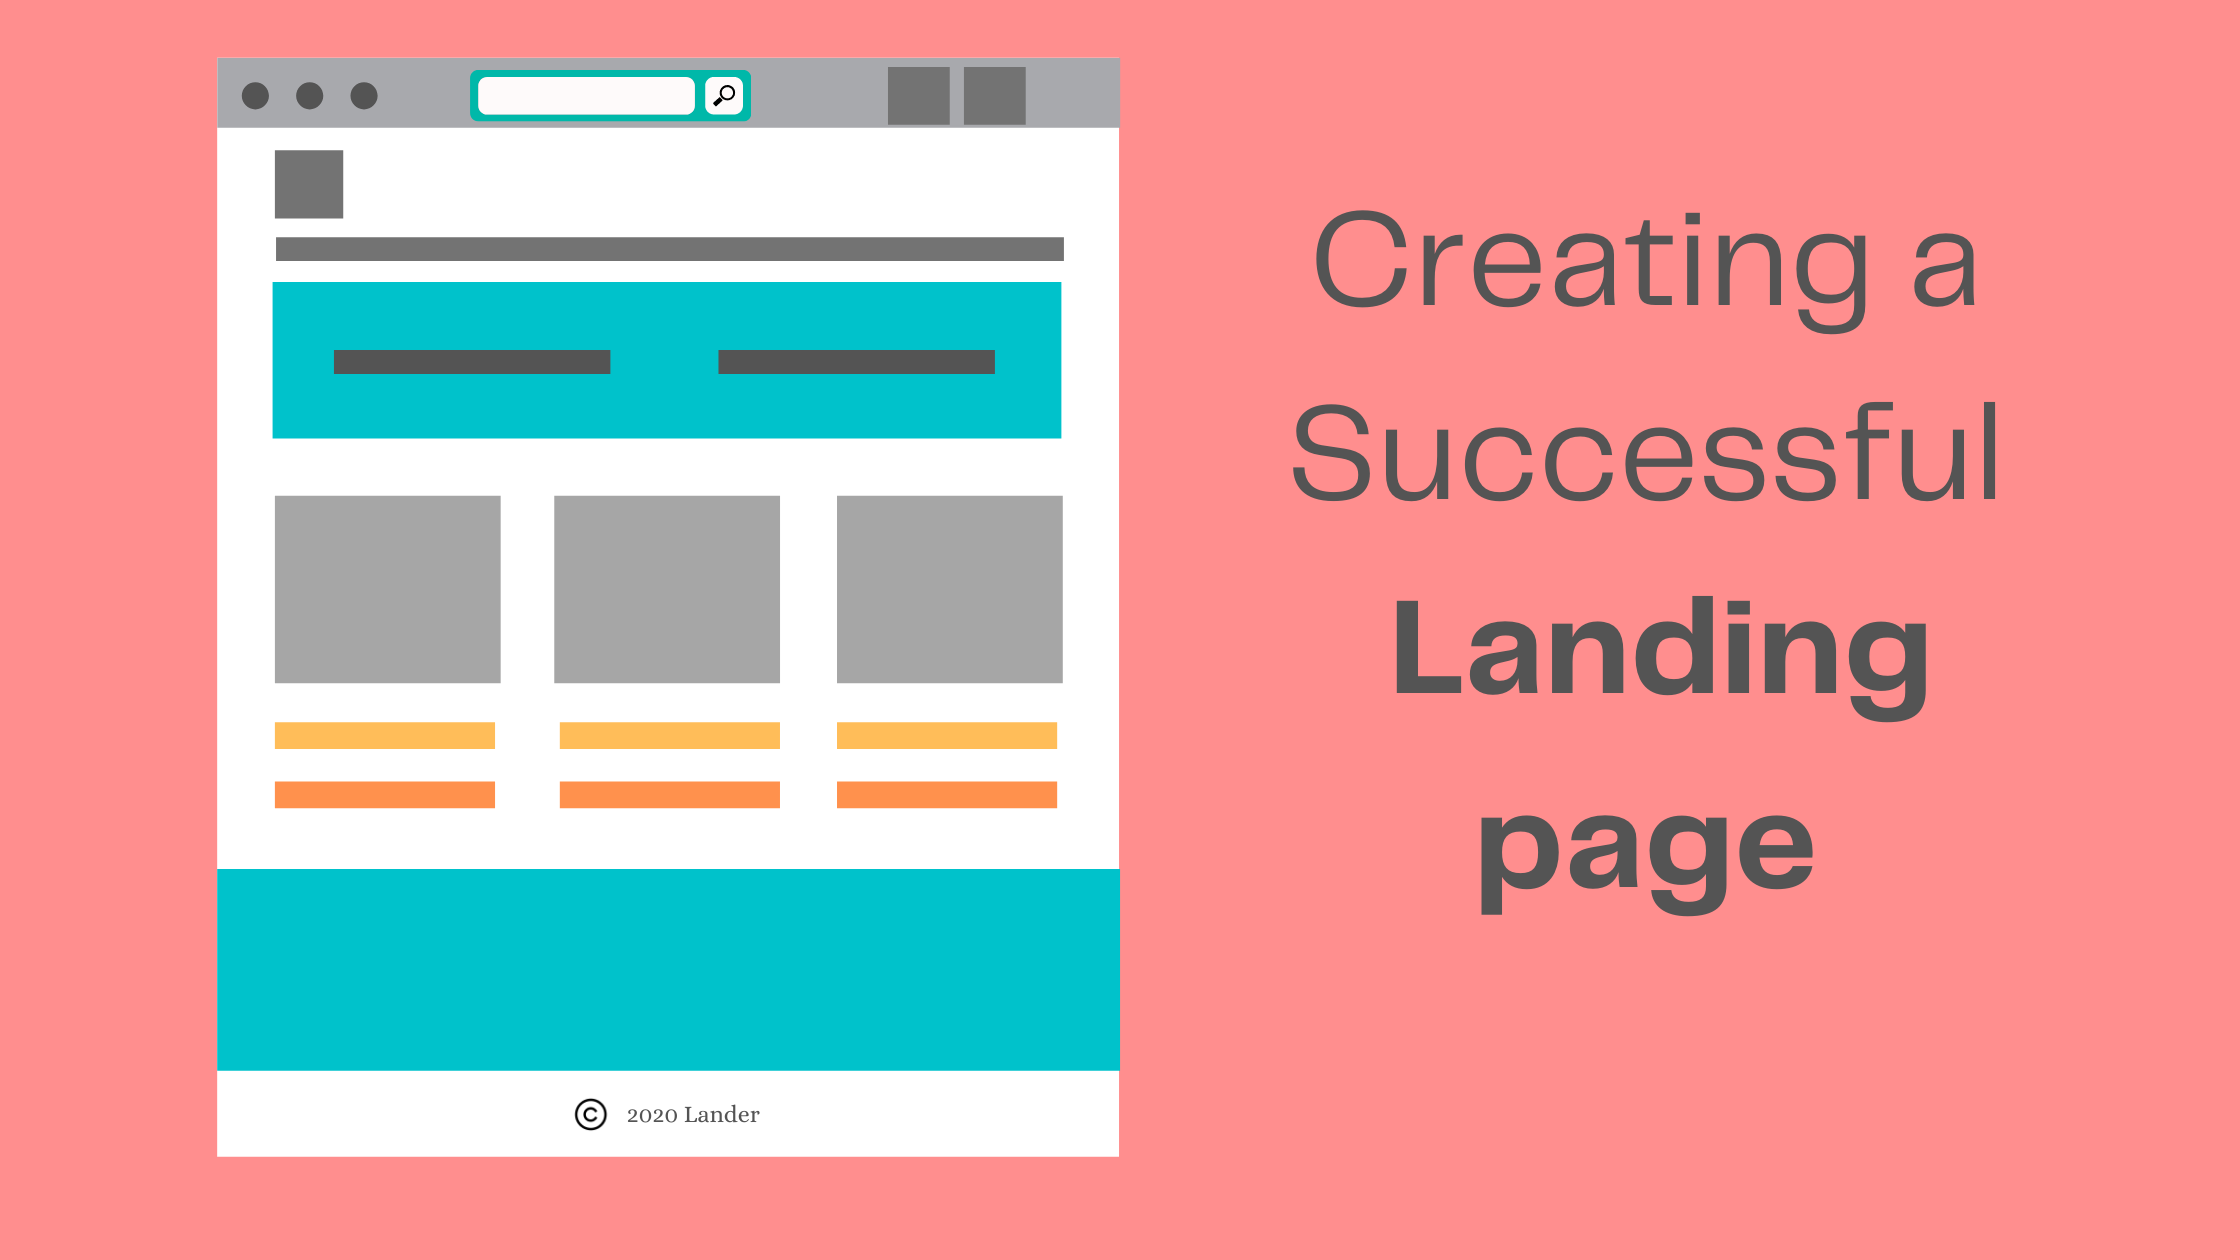 Creating successful landing pagea